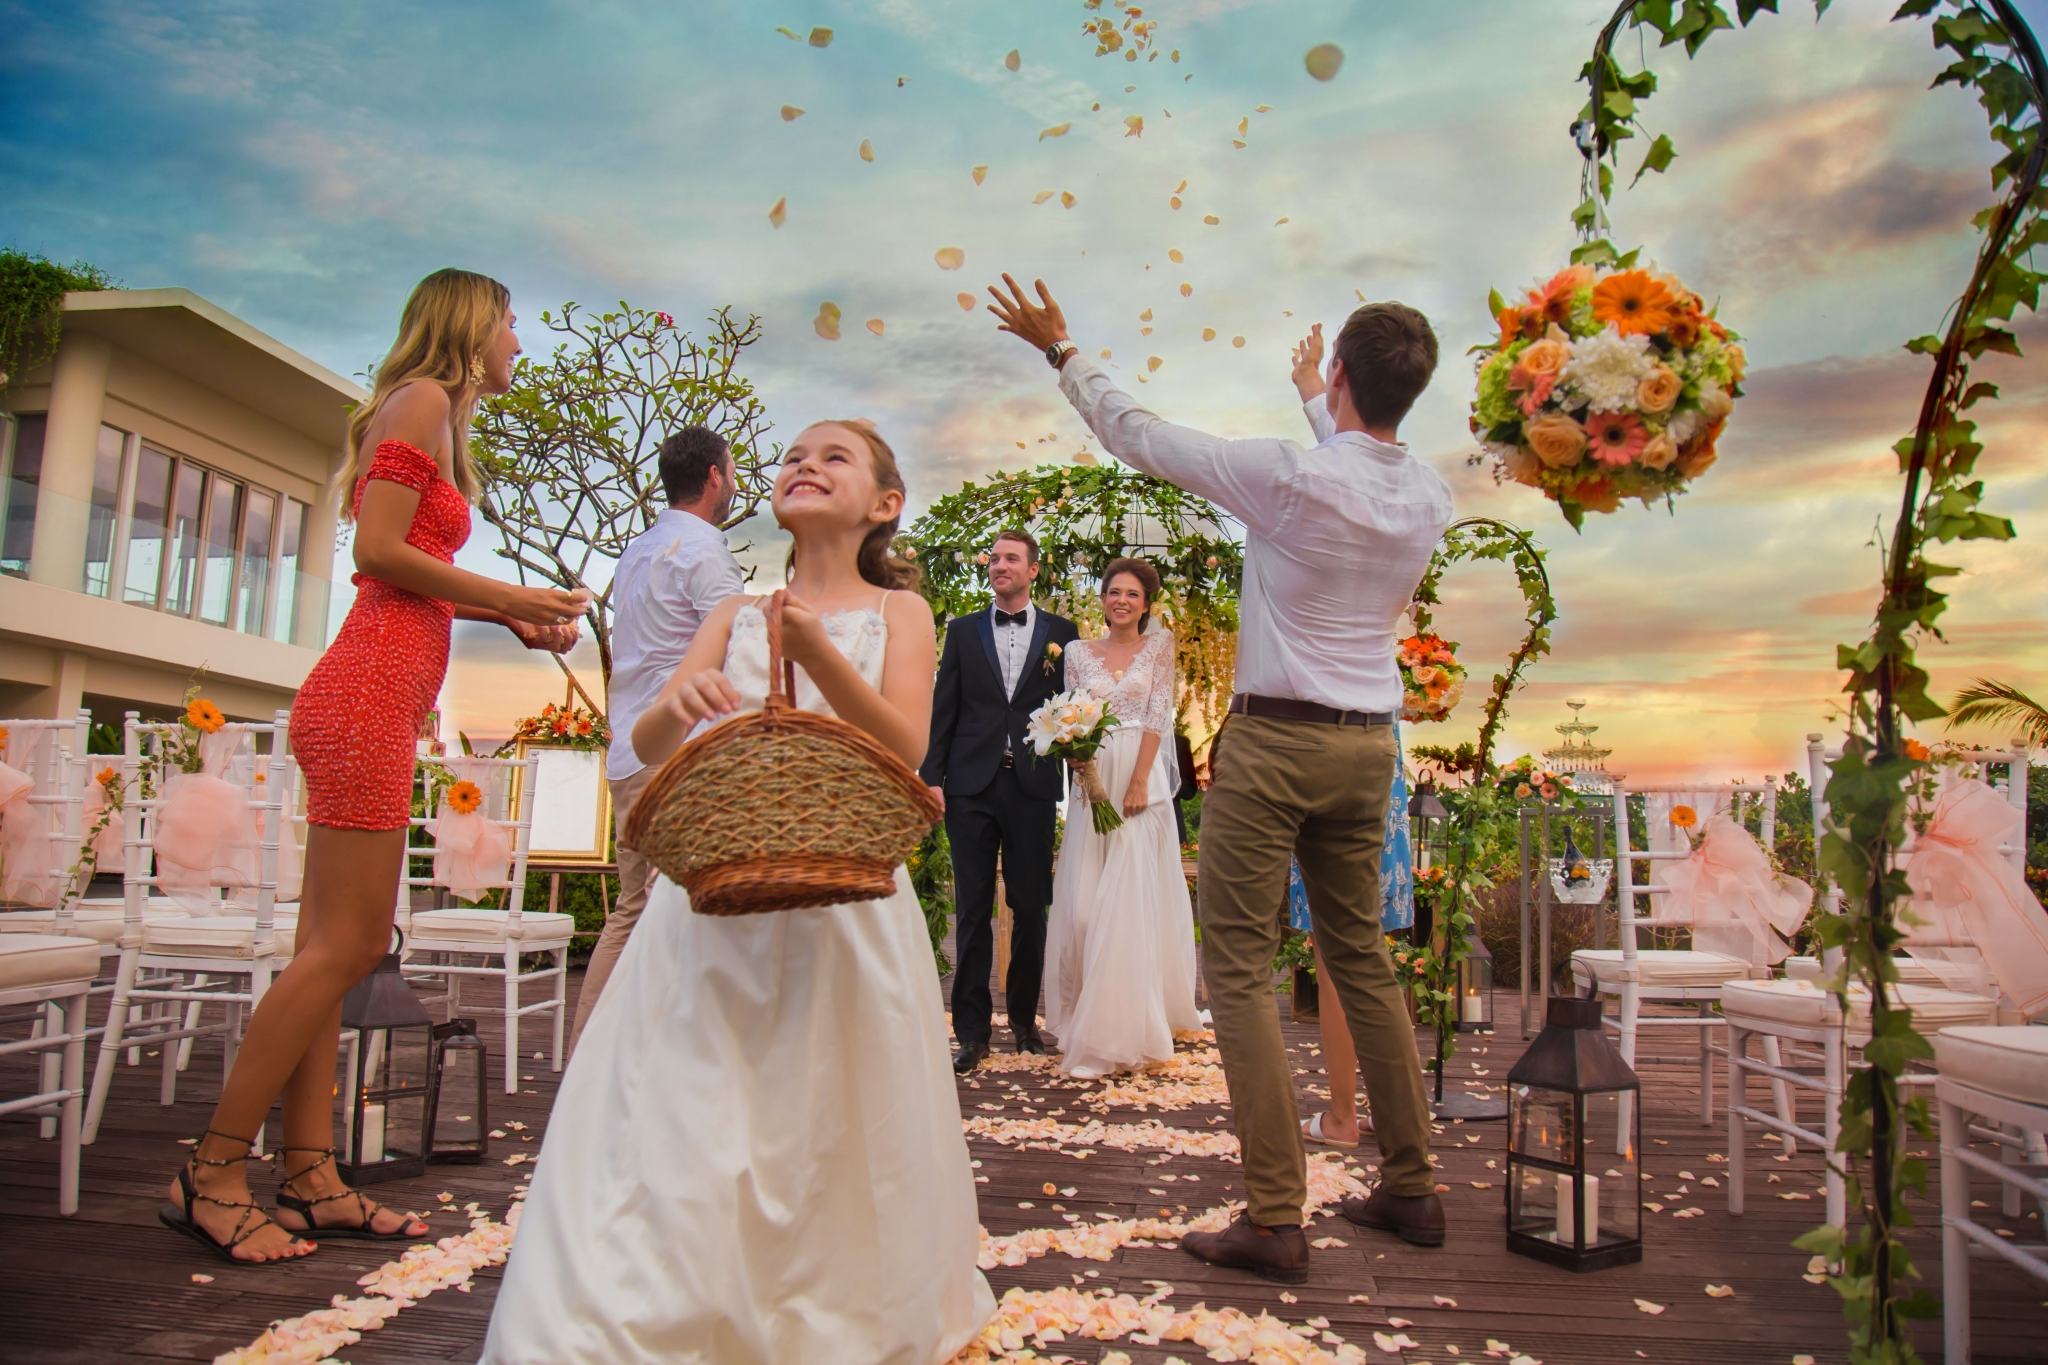 Elegant Garden Wedding at Courtyard | Sheraton Bali Kuta Resort